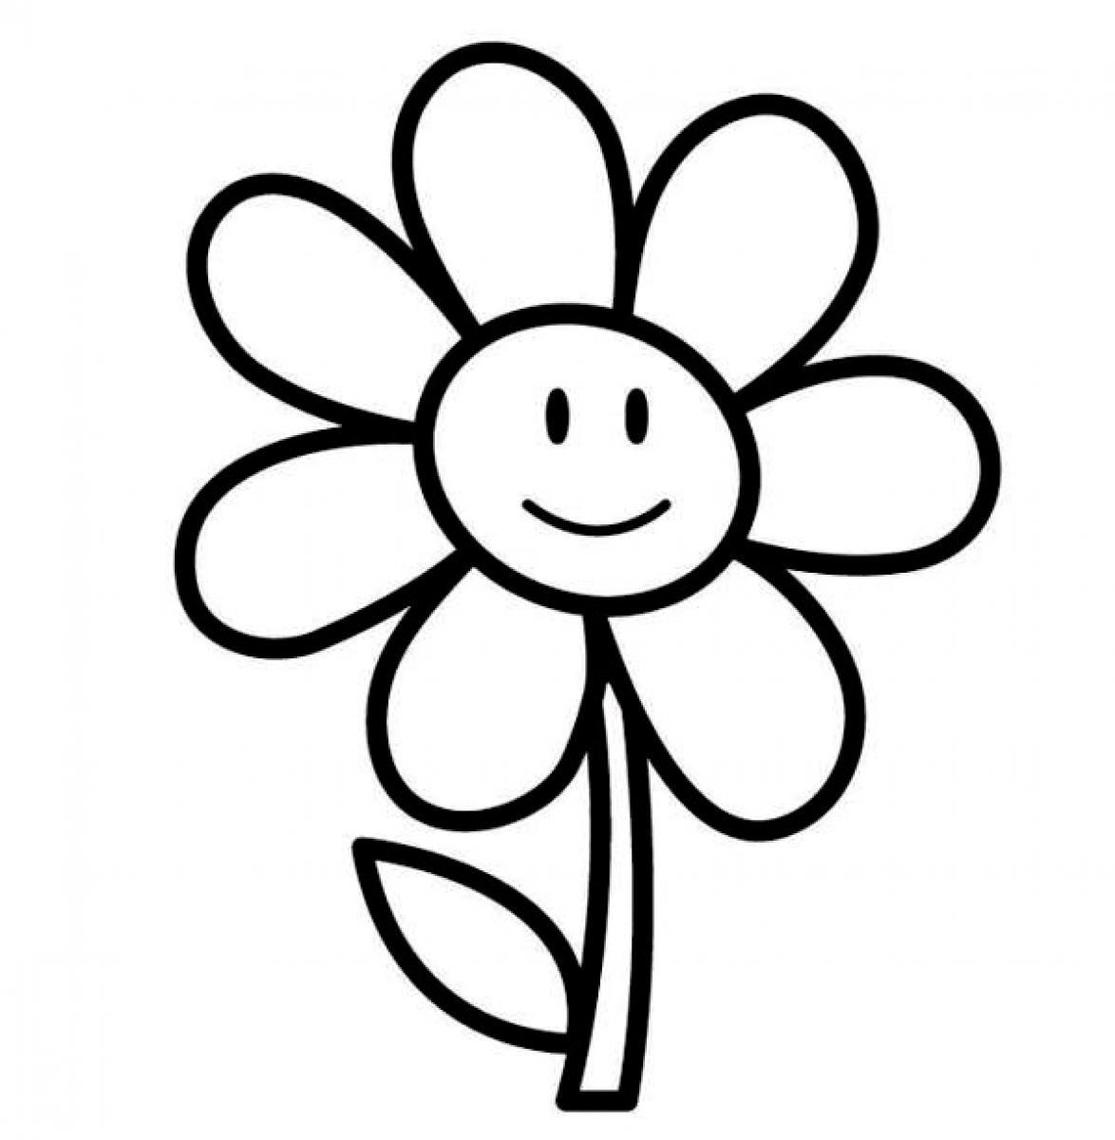 Free clipart flowers black and white free download best free 1115x1140 clip art black and white clip art flowers mightylinksfo